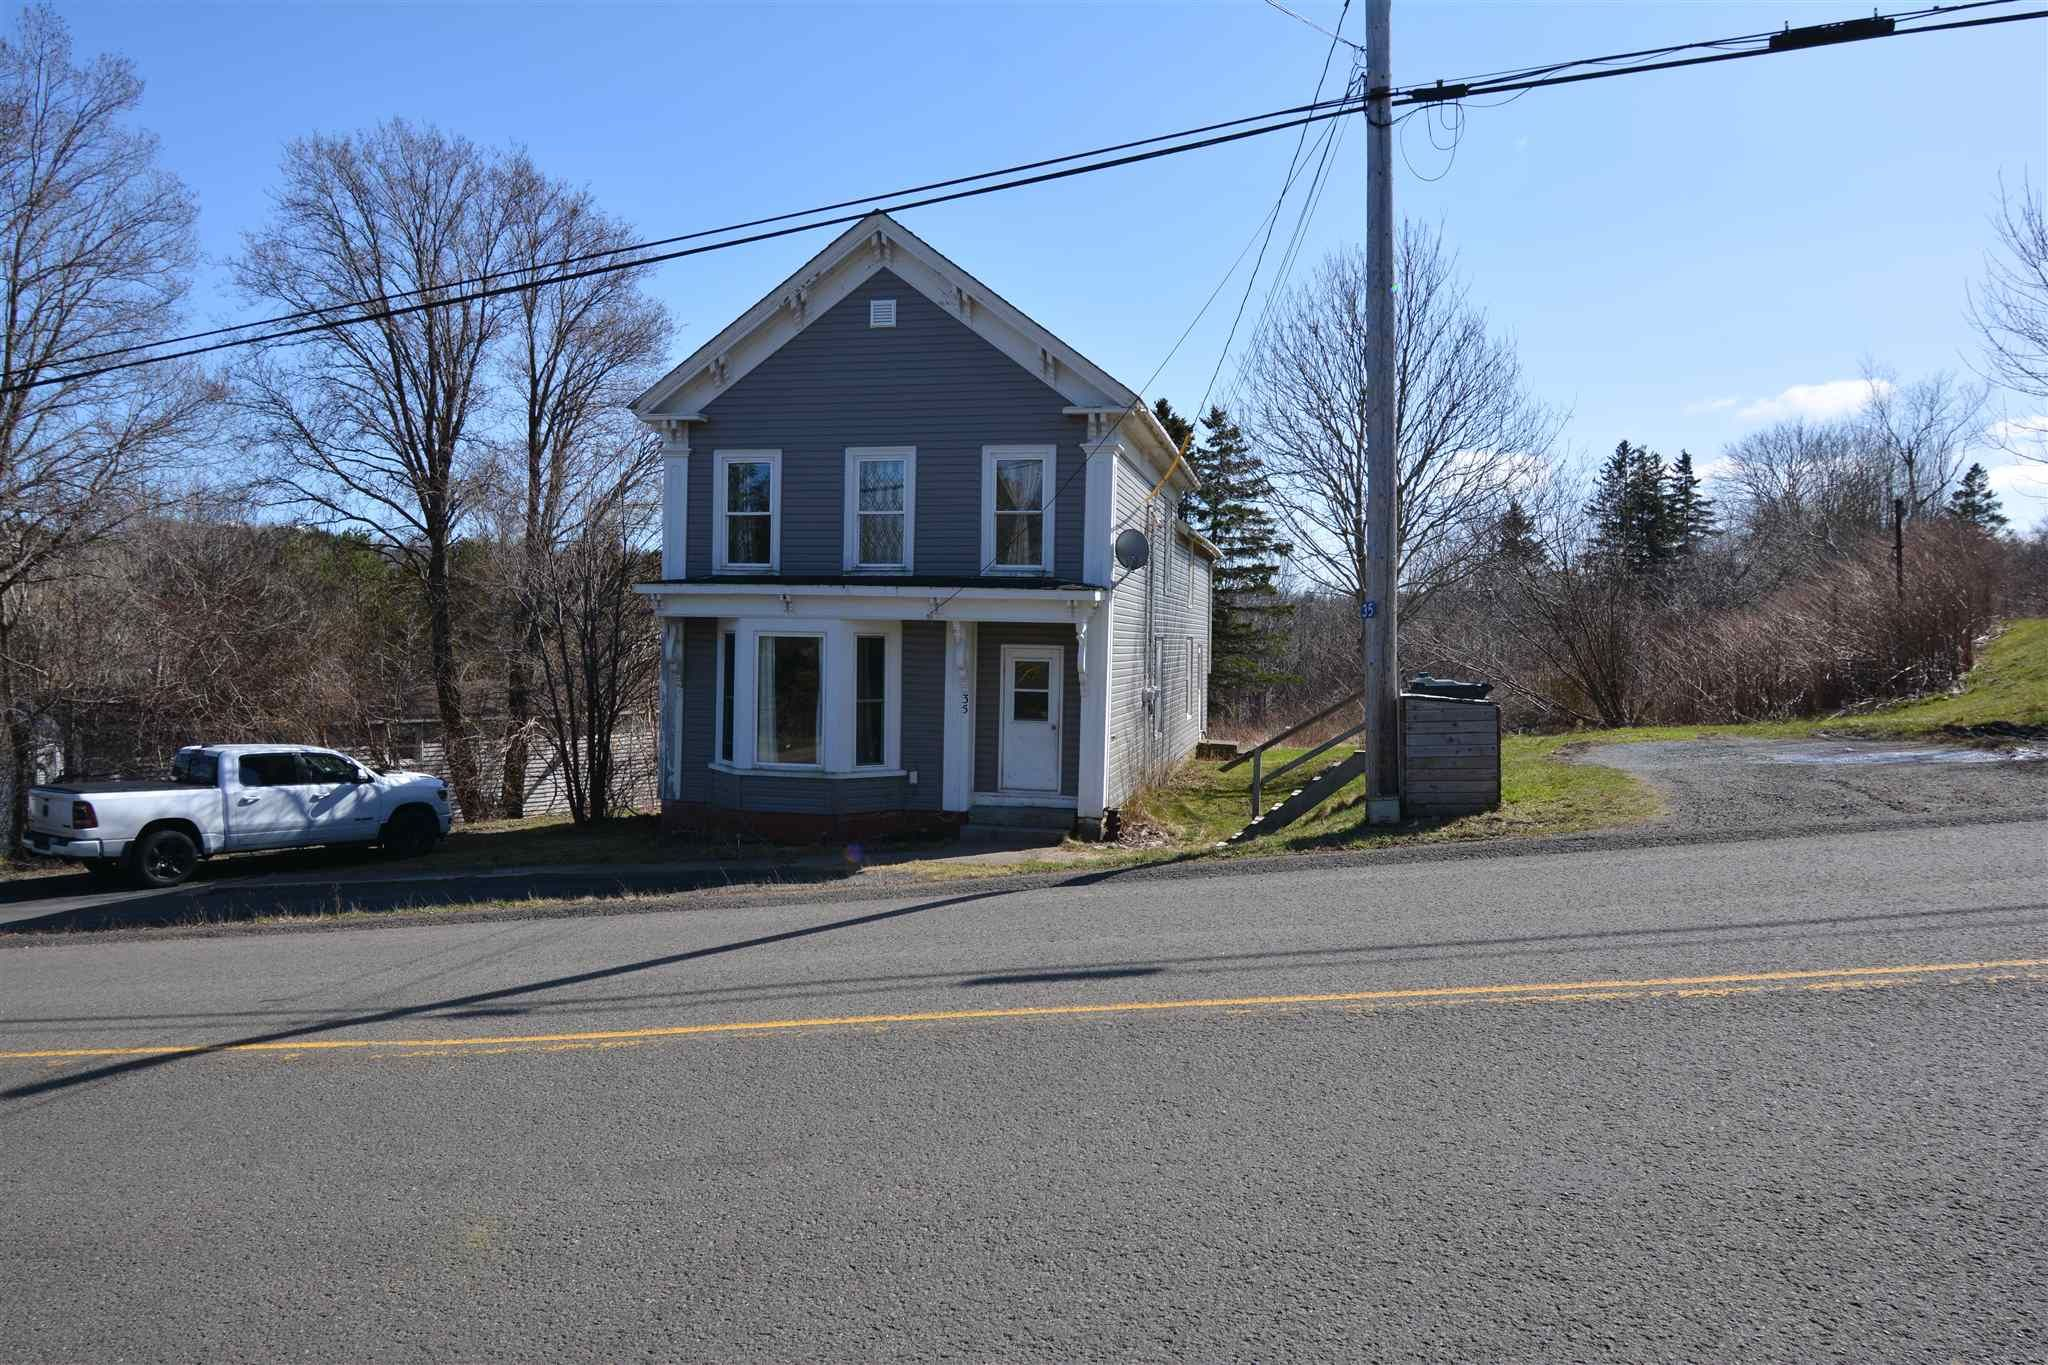 Main Photo: 35 CULLODEN in Digby: 401-Digby County Multi-Family for sale (Annapolis Valley)  : MLS®# 202107766